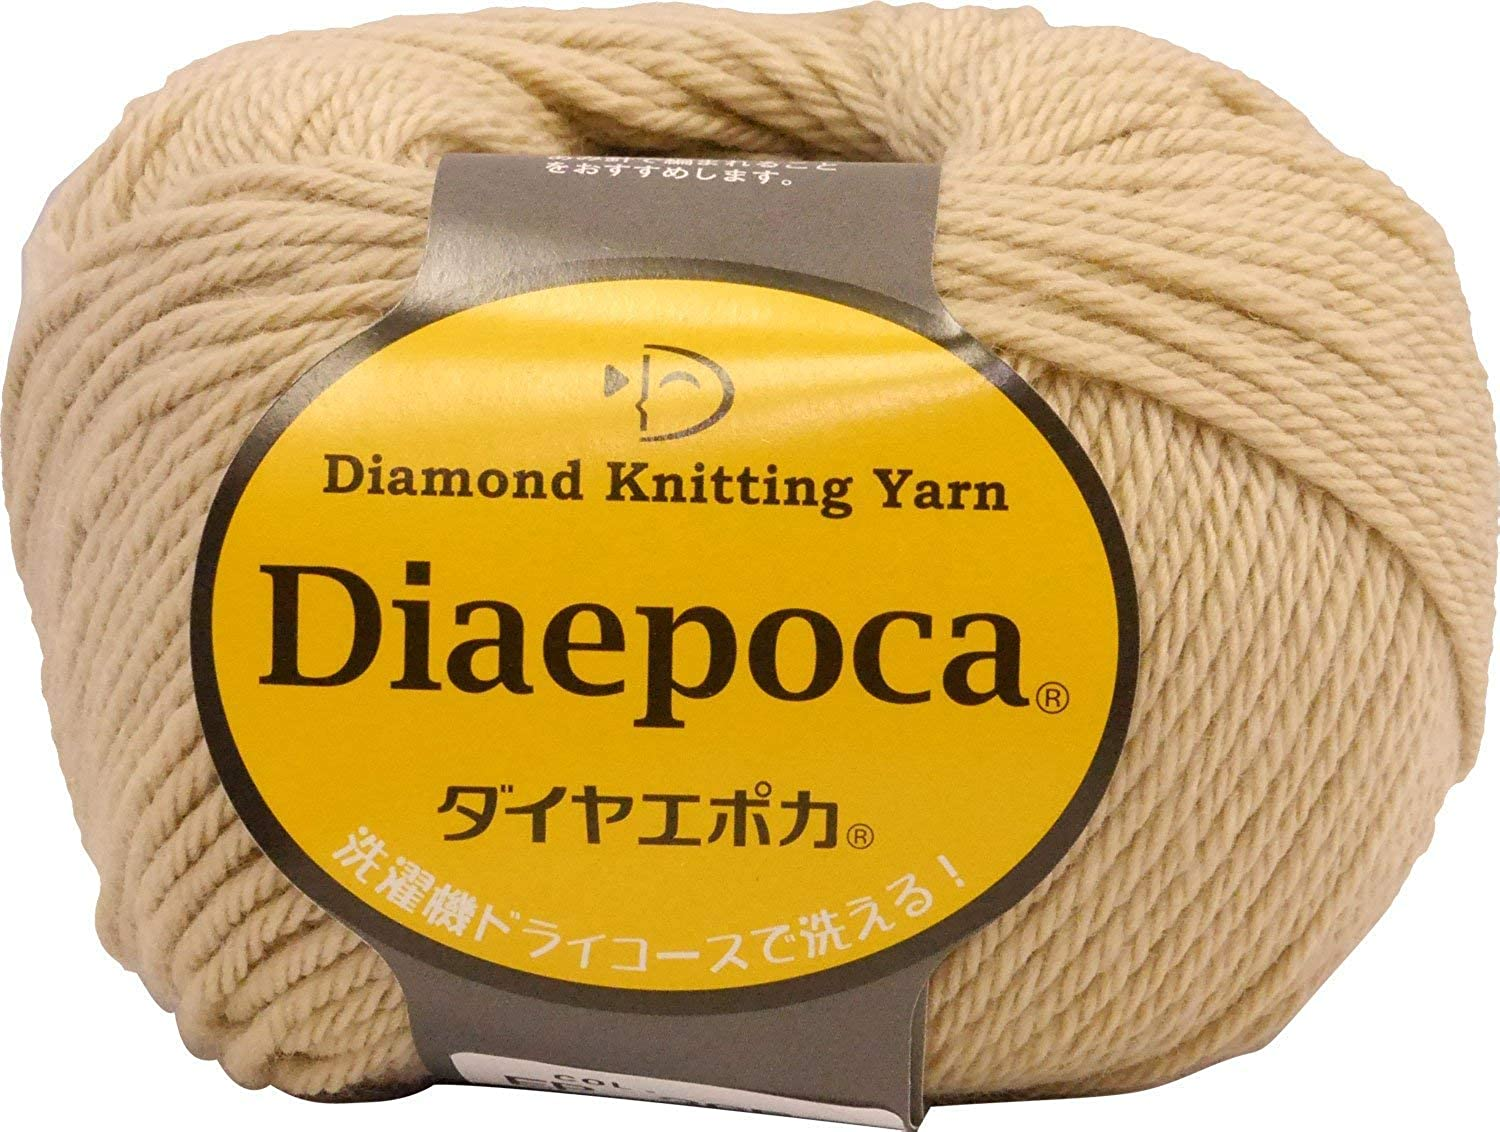 Hiromi House Japan Diamondback wool yarn MEDIUM col.365 beige 40 g 81 m 5 ball set